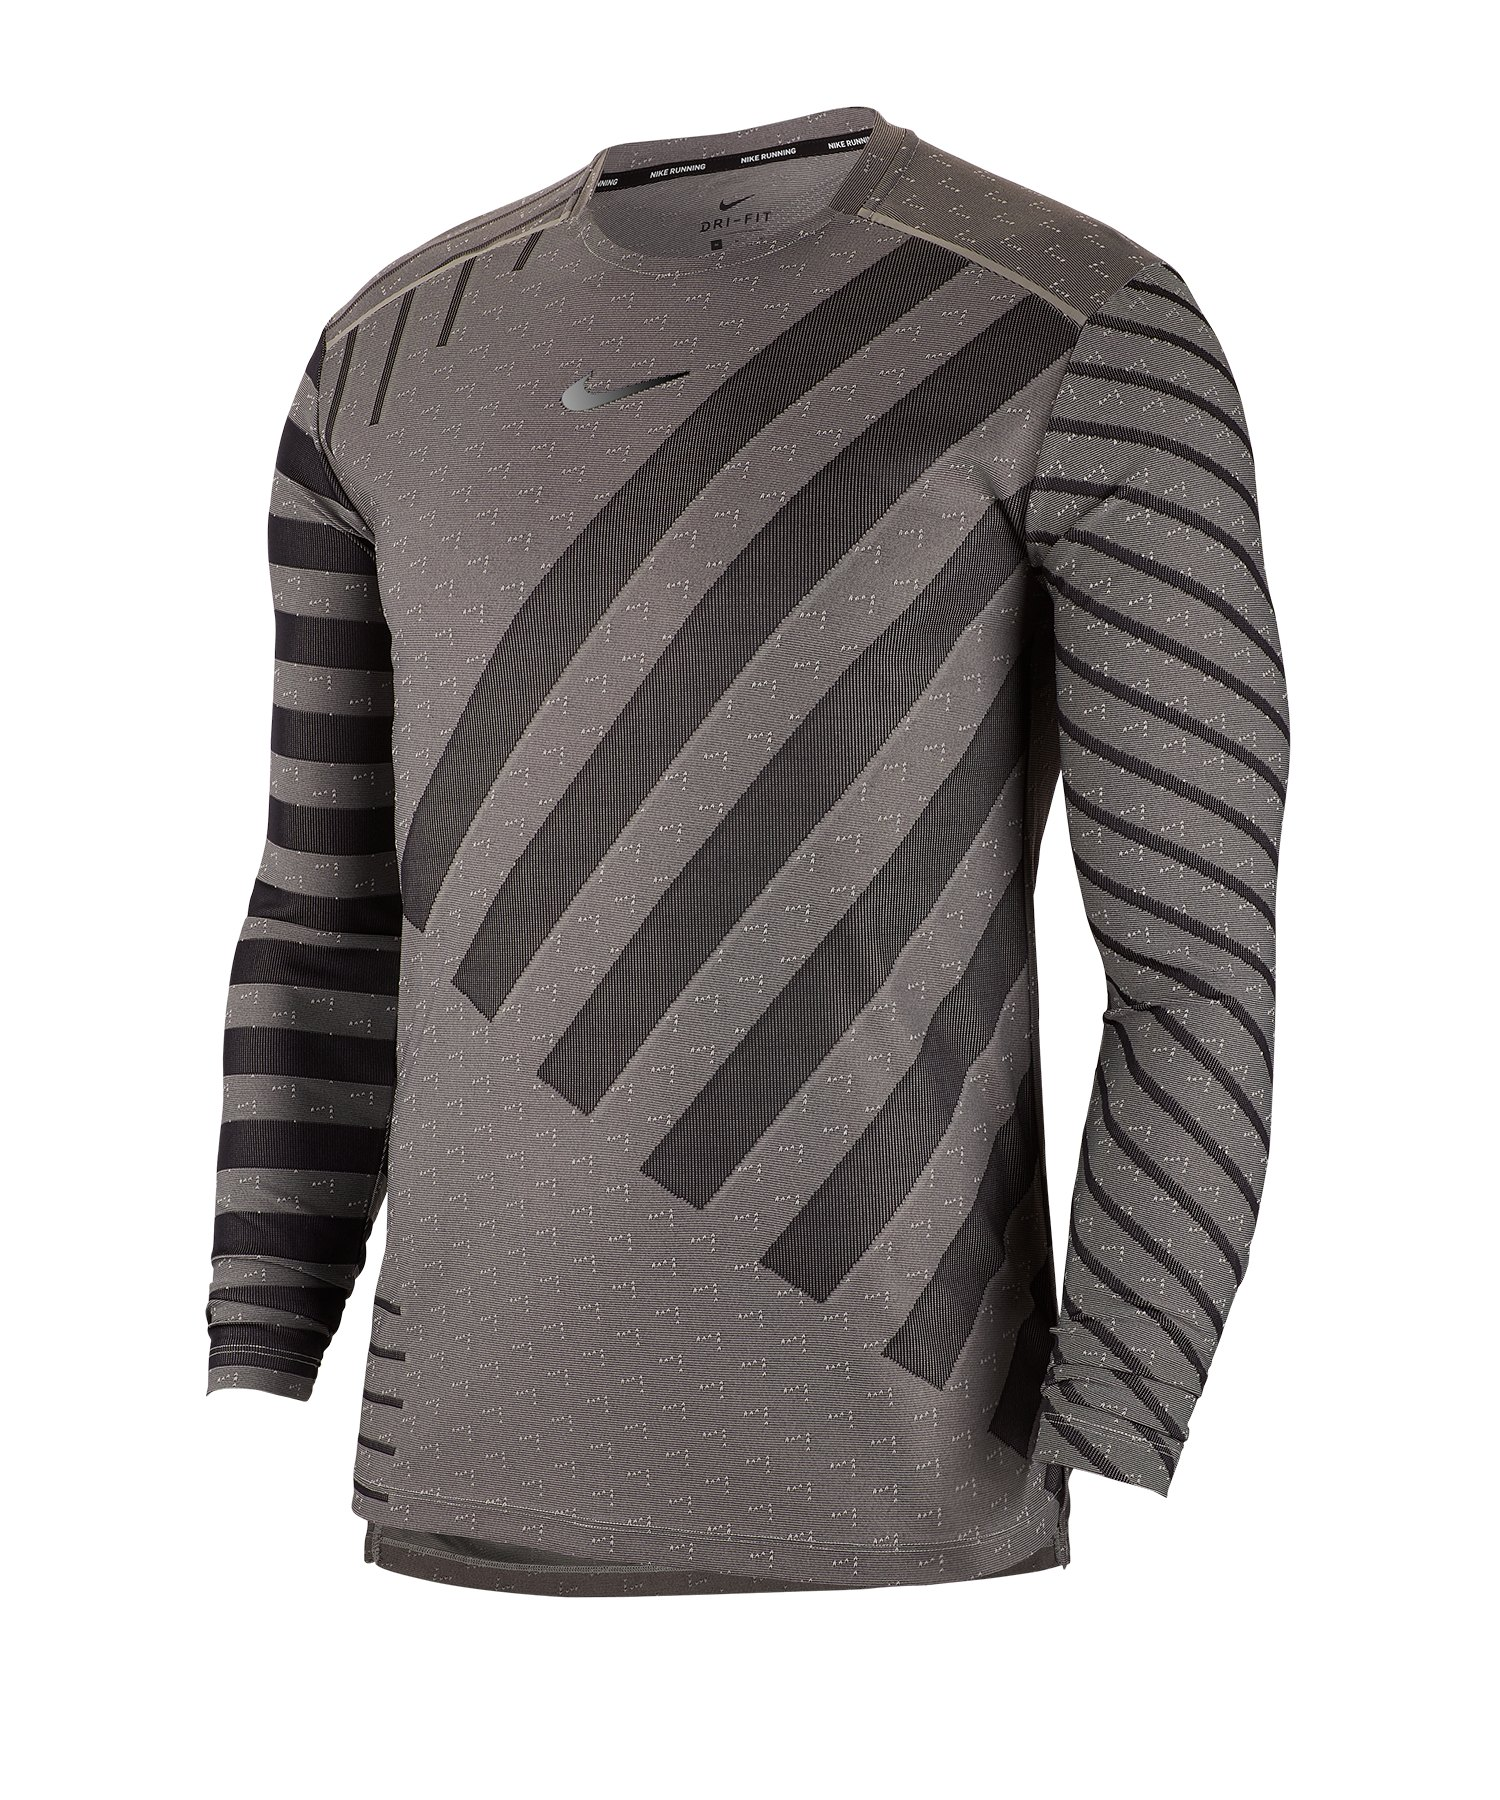 Nike Tech Knit Trainingsshirt langarm Grau F097 - grau